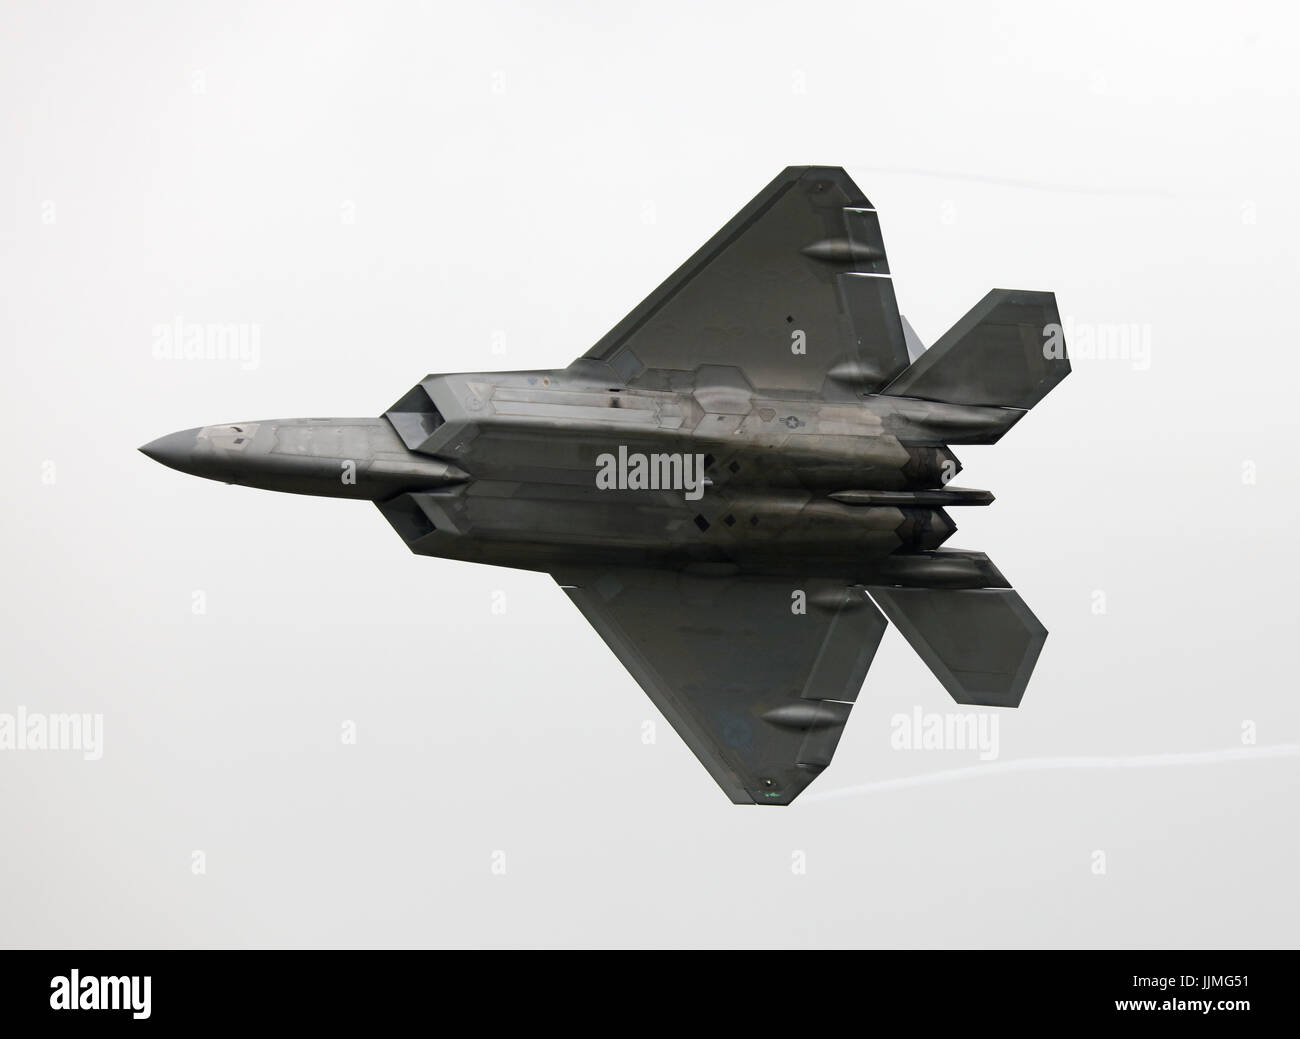 lockheed martin f22 raptor with p51d mustang - Stock Image